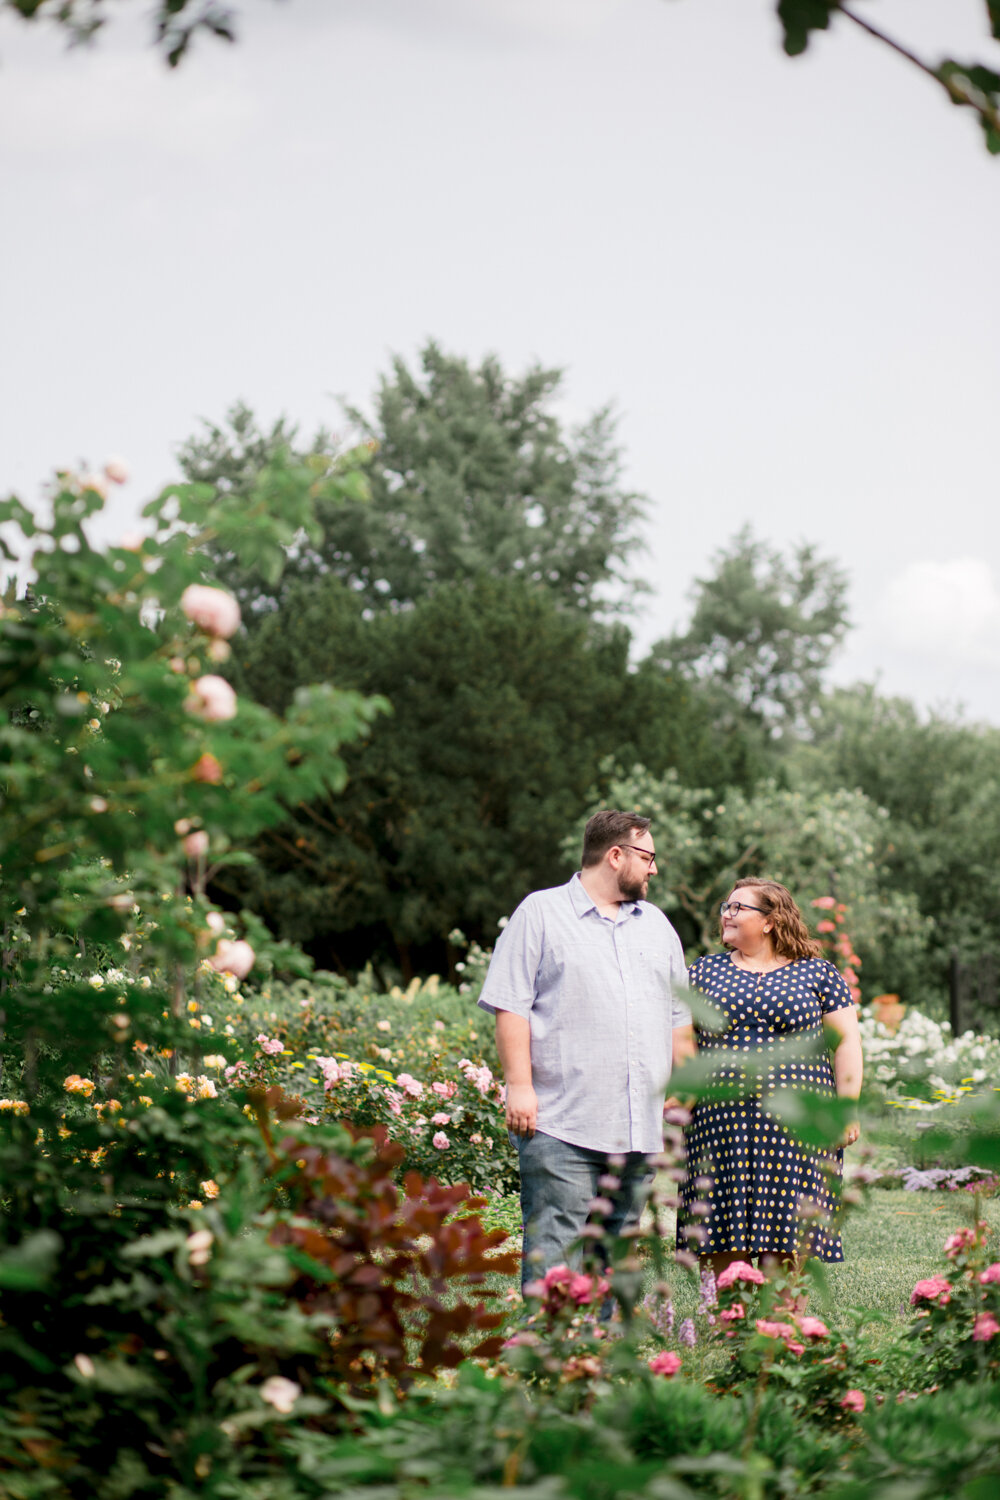 morris-arboretum-chestnut-hill-garden-engagement-session-philadelphia-wedding-photography-11.jpg